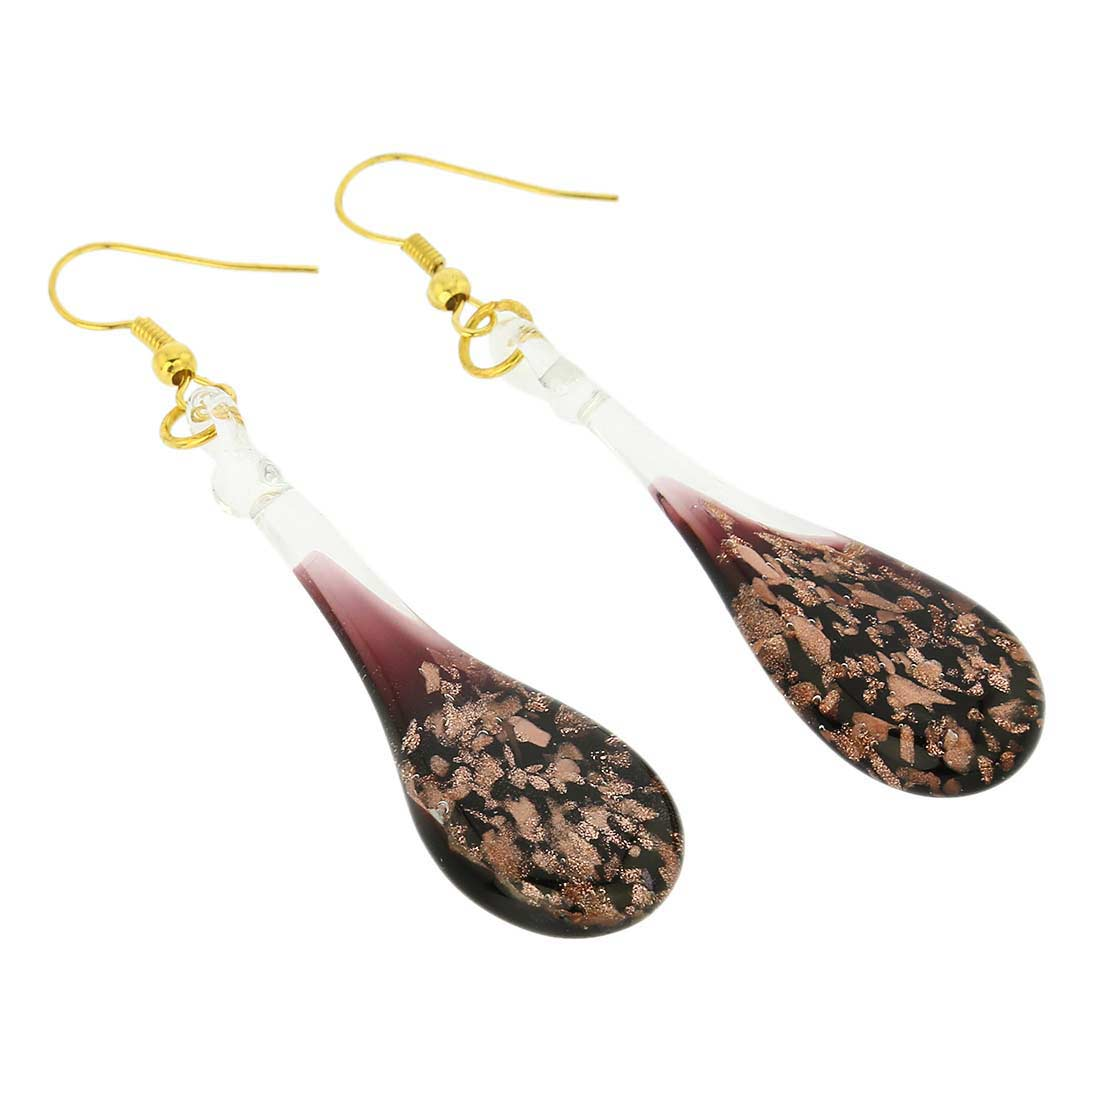 Starlight icicle earrings - black